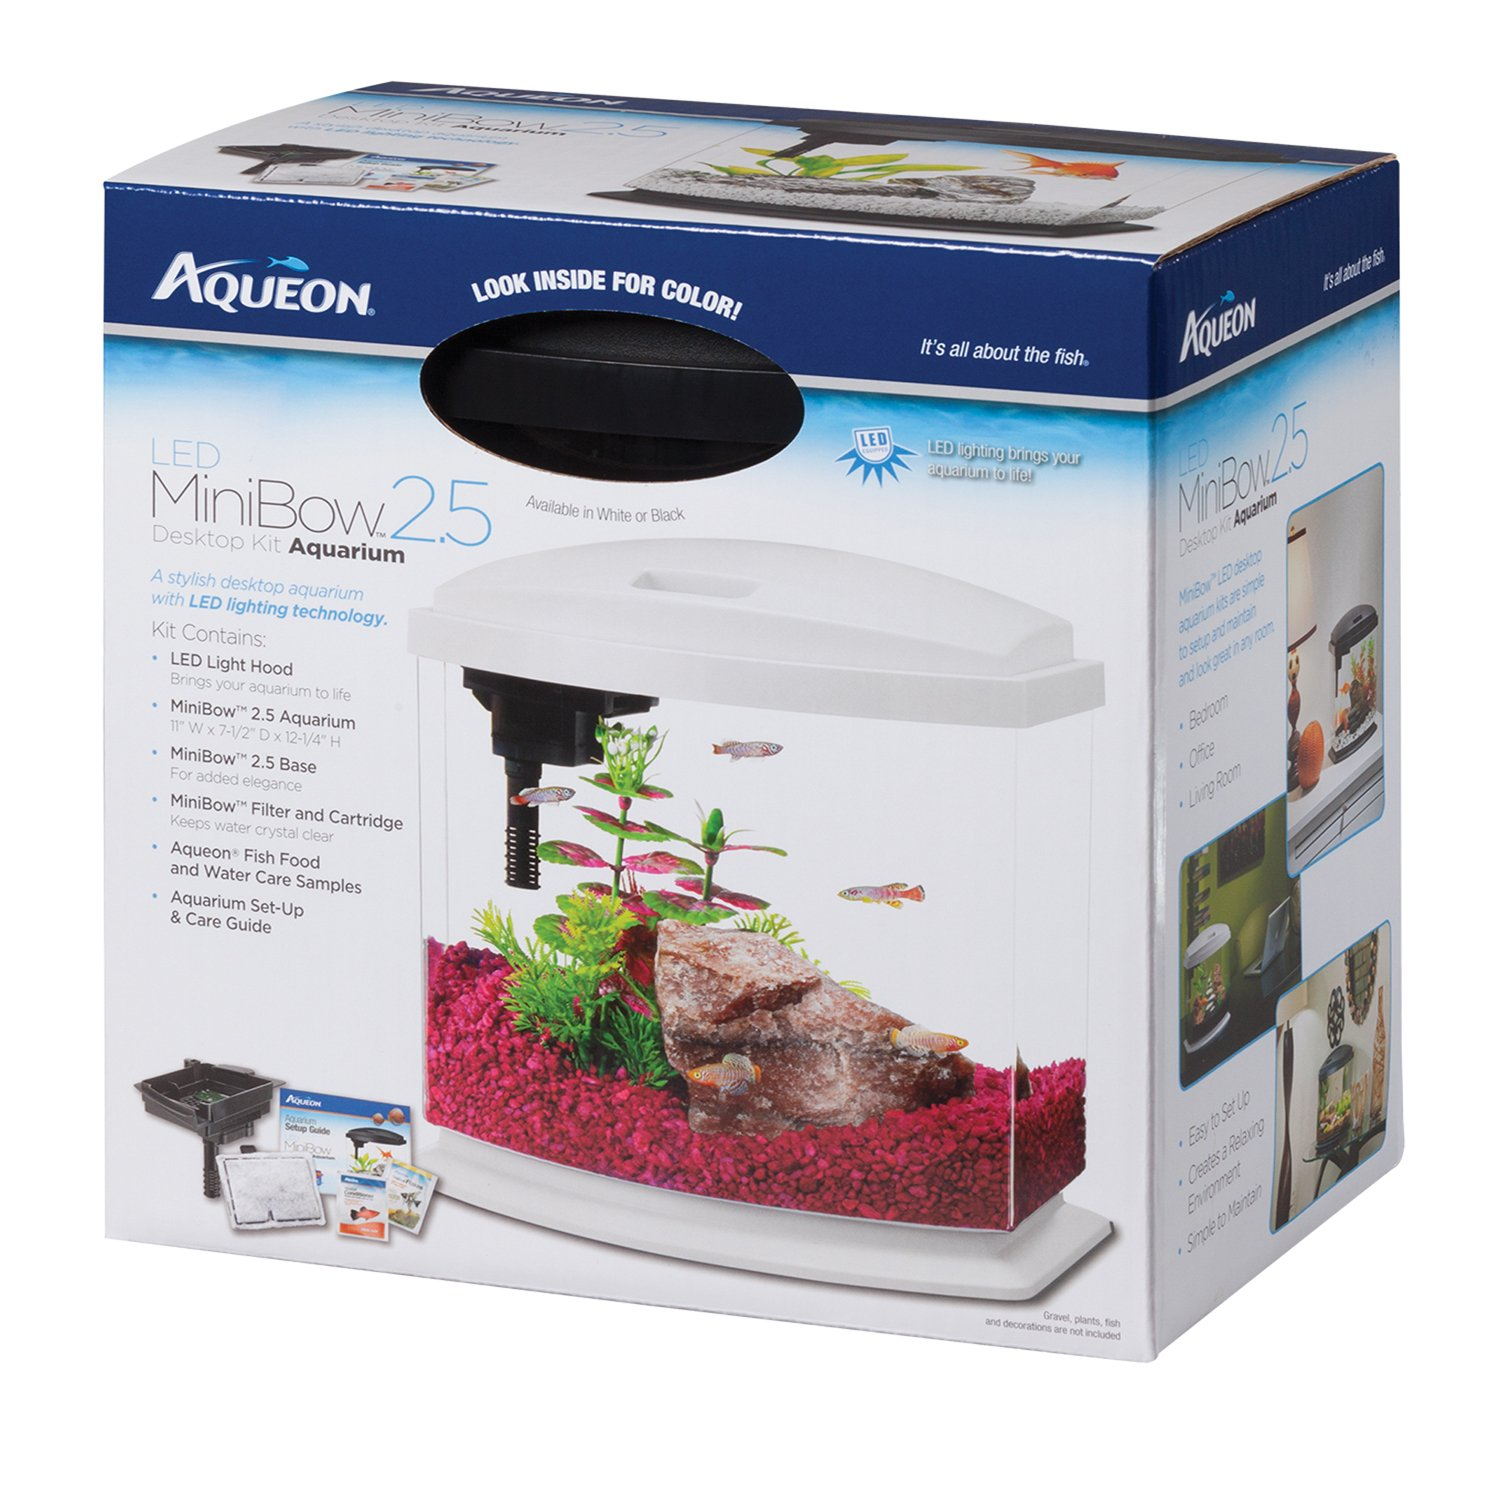 Aqueon bettabow led desktop fish aquarium kit petco for Types of betta fish petco